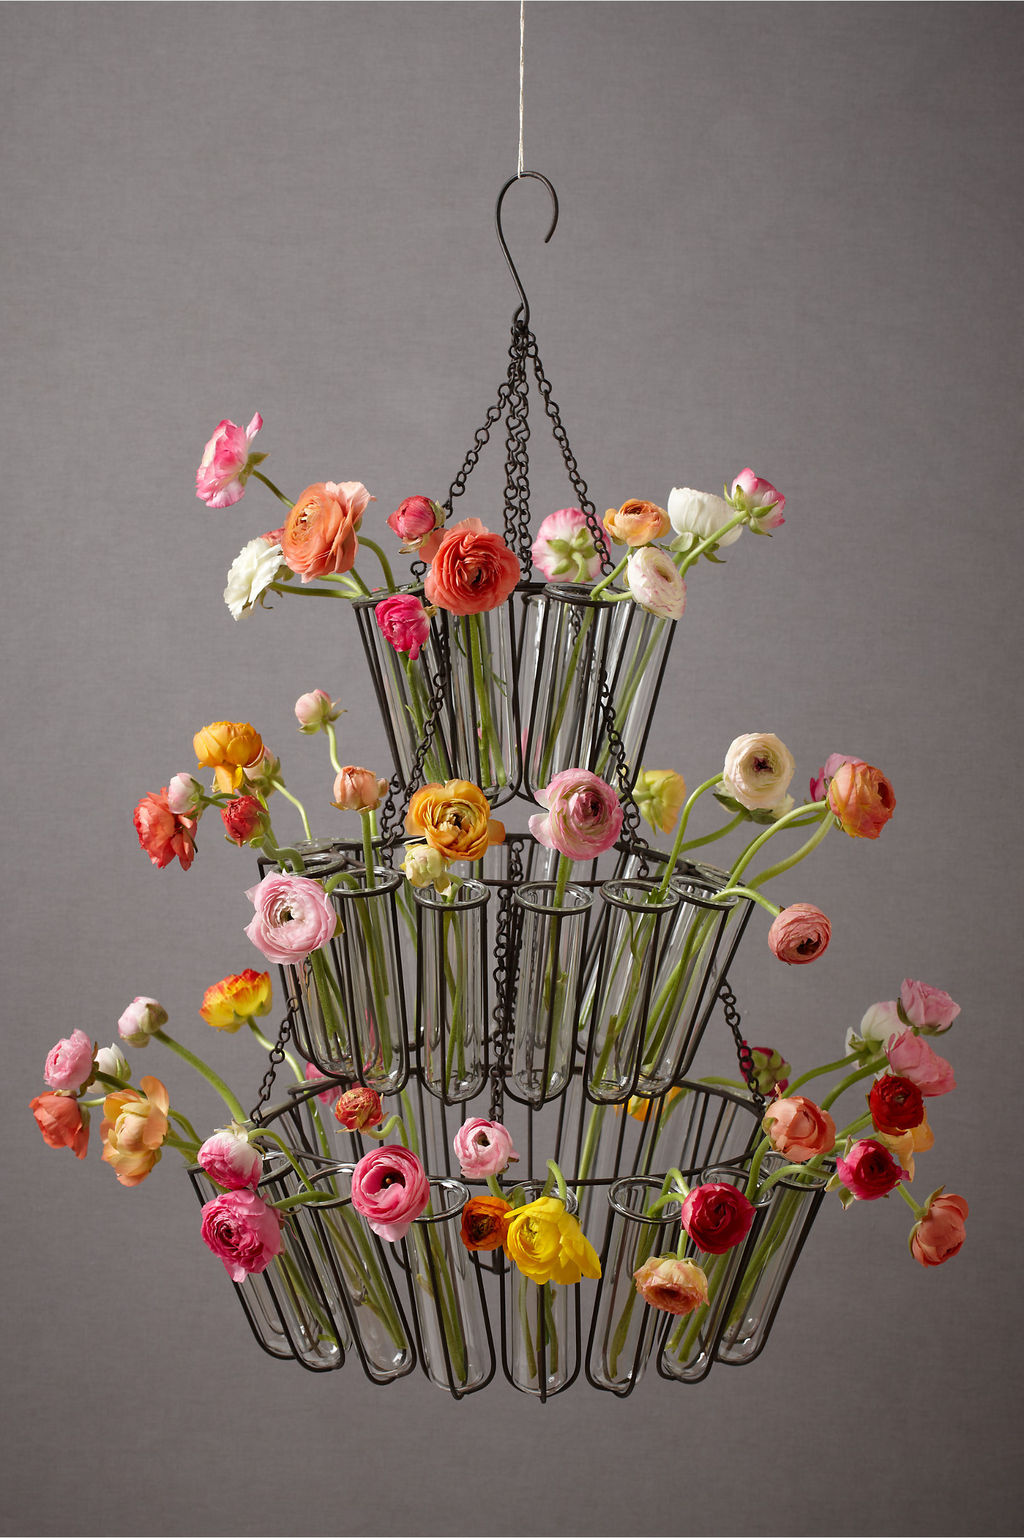 Spring-wedding-decor-anthropology-chandelier-with-bright-wedding-flowers.full